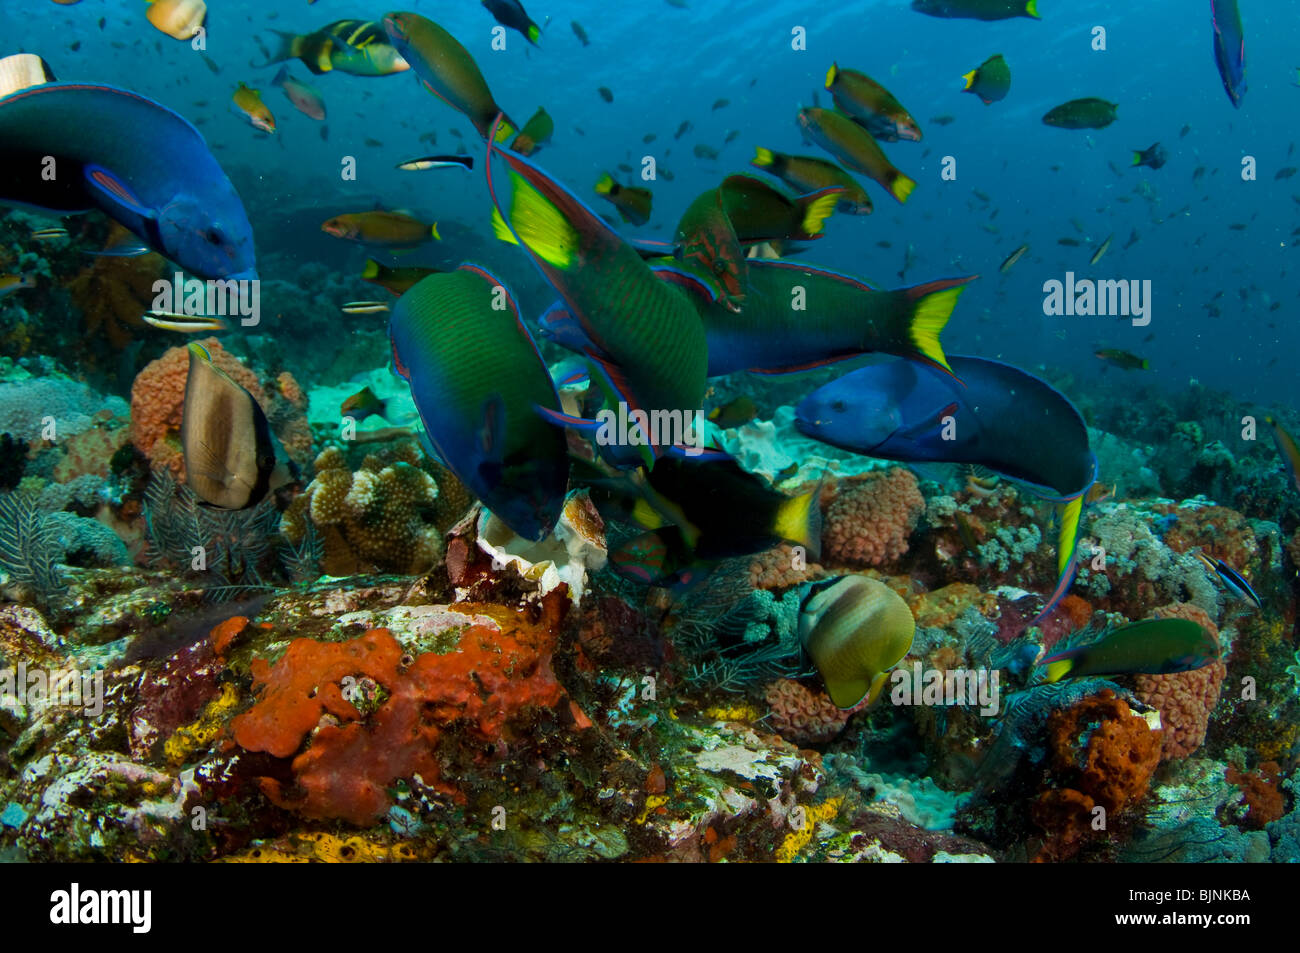 Tropical Fish on Coral Reef, Current City, Komodo National Park, Indonesia - Stock Image